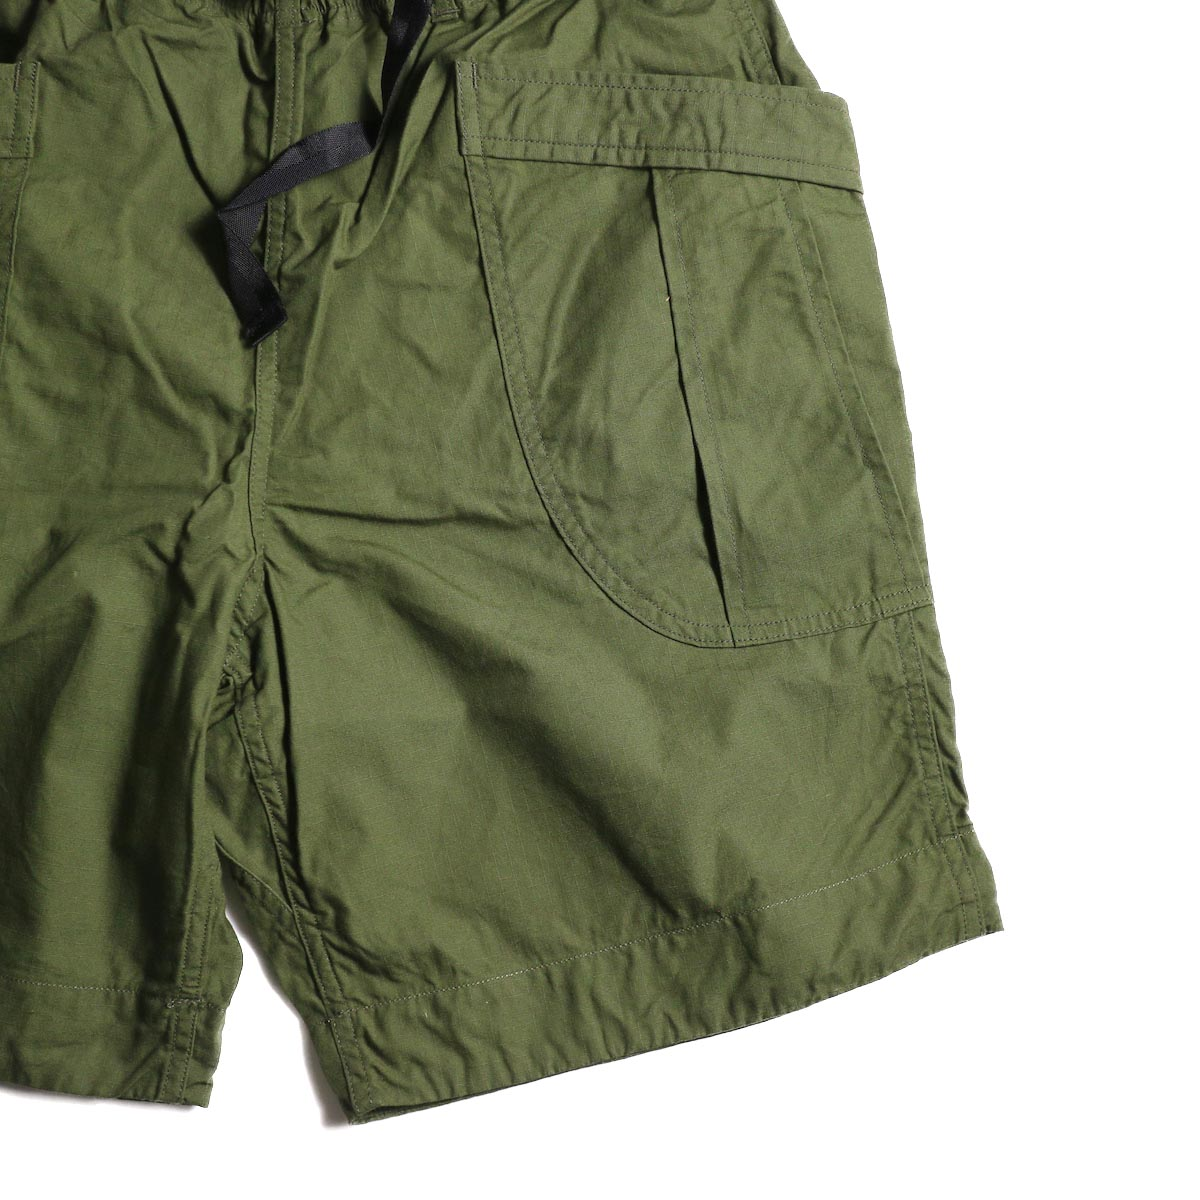 A VONTADE / Fatigue Shorts (Olive) ポケット